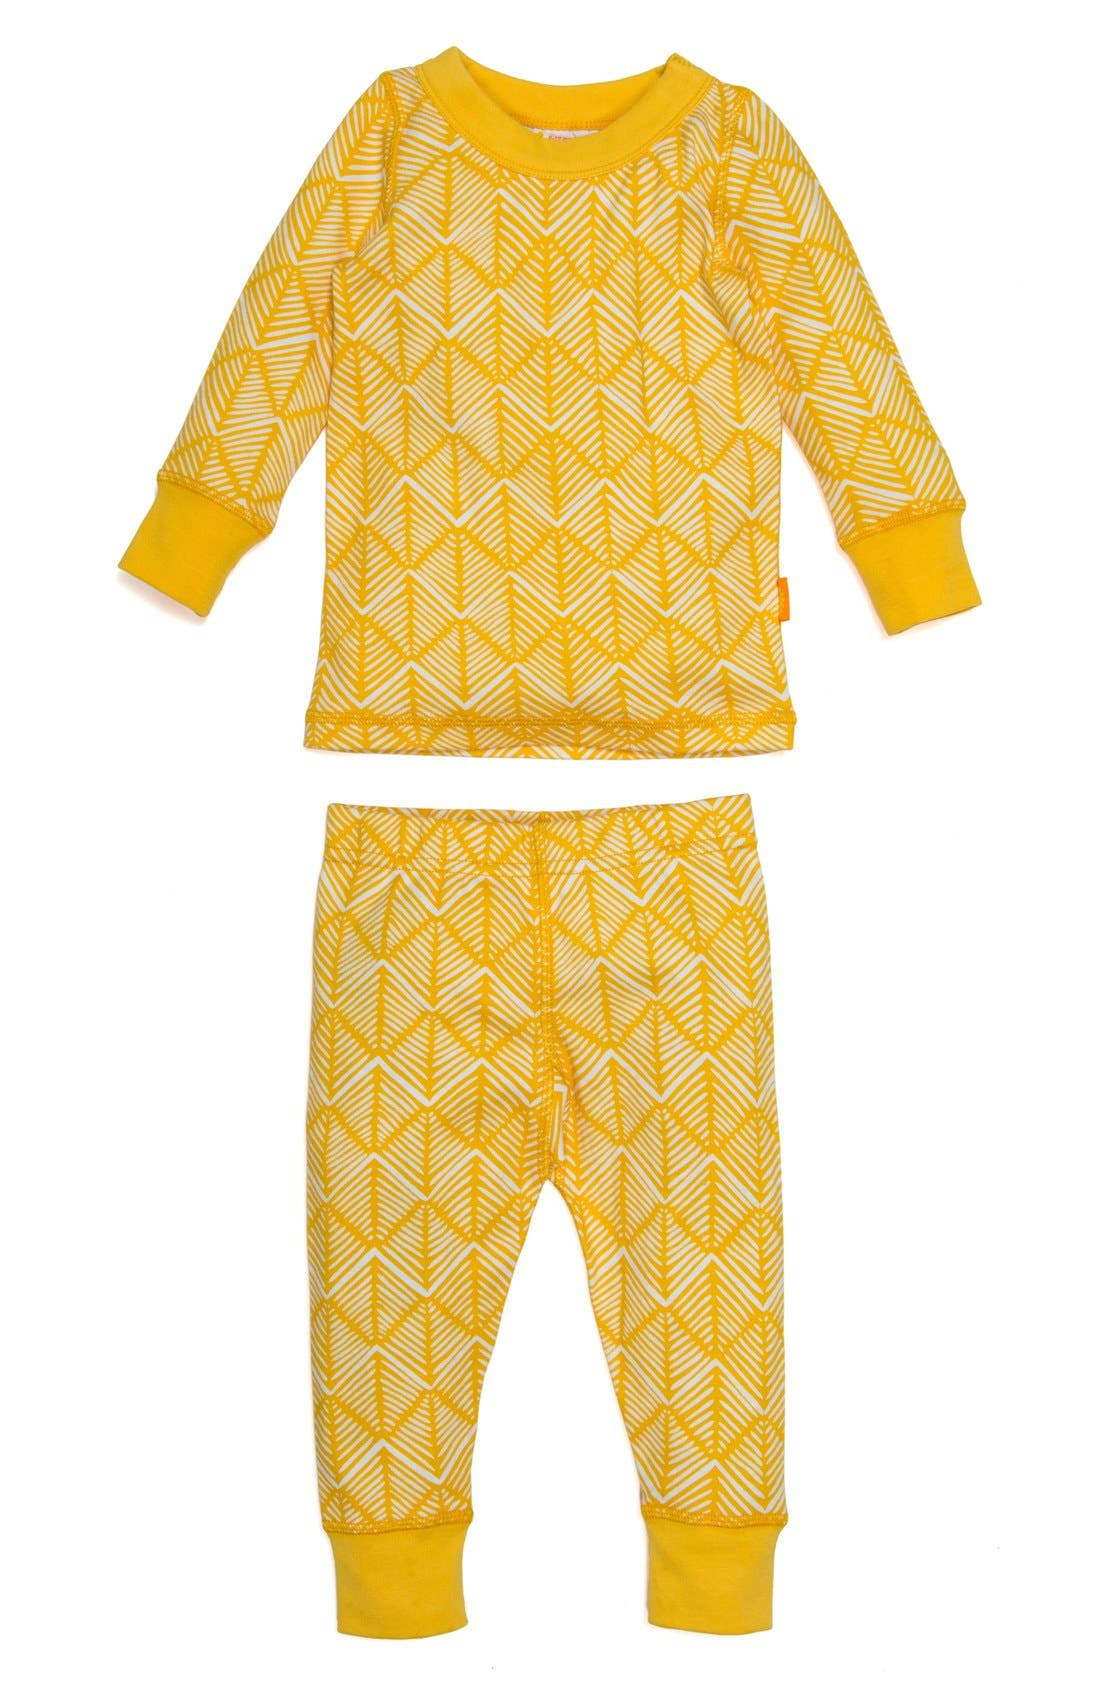 Main Image - Masalababy Diamond Hatch Fitted Two-Piece Pajamas (Toddler, Little Kids & Big Kids)